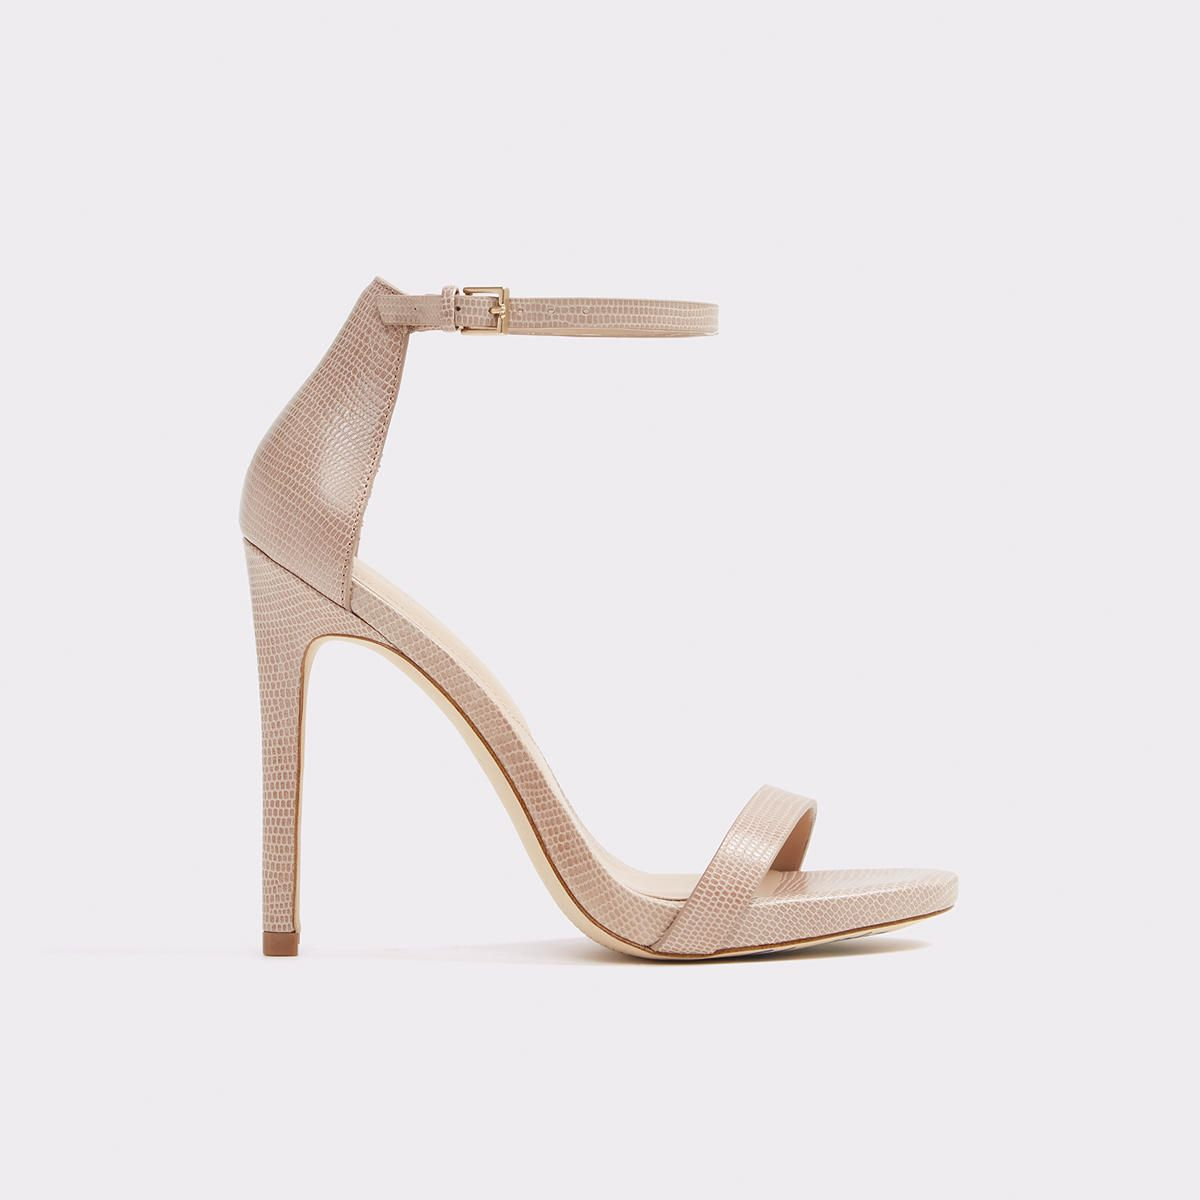 debc9c10814 Caraa A timeless bare-all ankle-strap high heel sandal that stands the test  of time. From wedding parties to date night to office wear